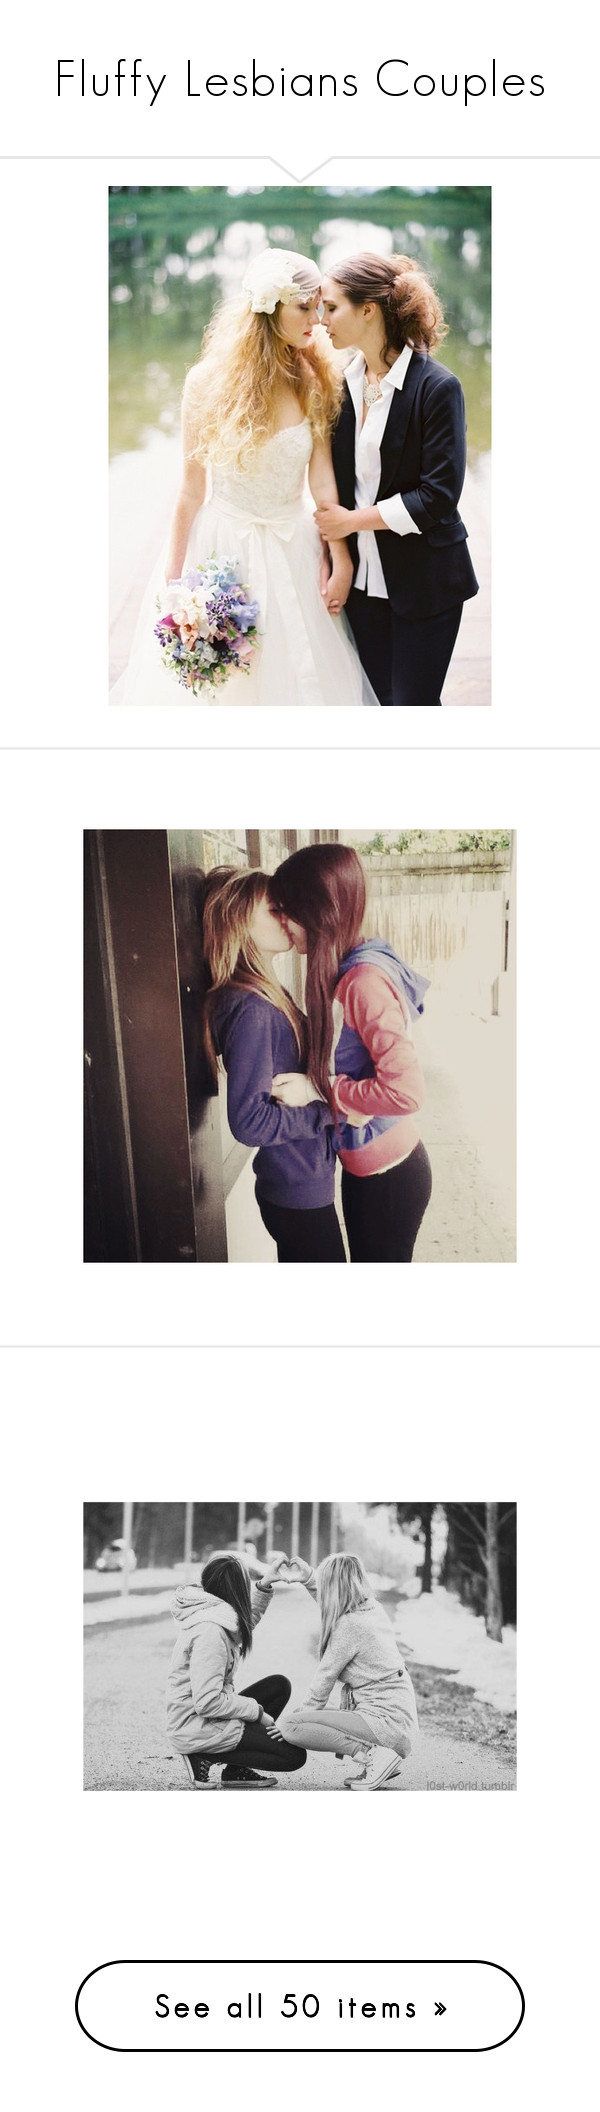 """""""Fluffy Lesbians Couples"""" by samara-missschmidt ❤ liked on Polyvore featuring couples, lesbian, pictures, couple, love, black and white, people, photos, backgrounds and photo"""